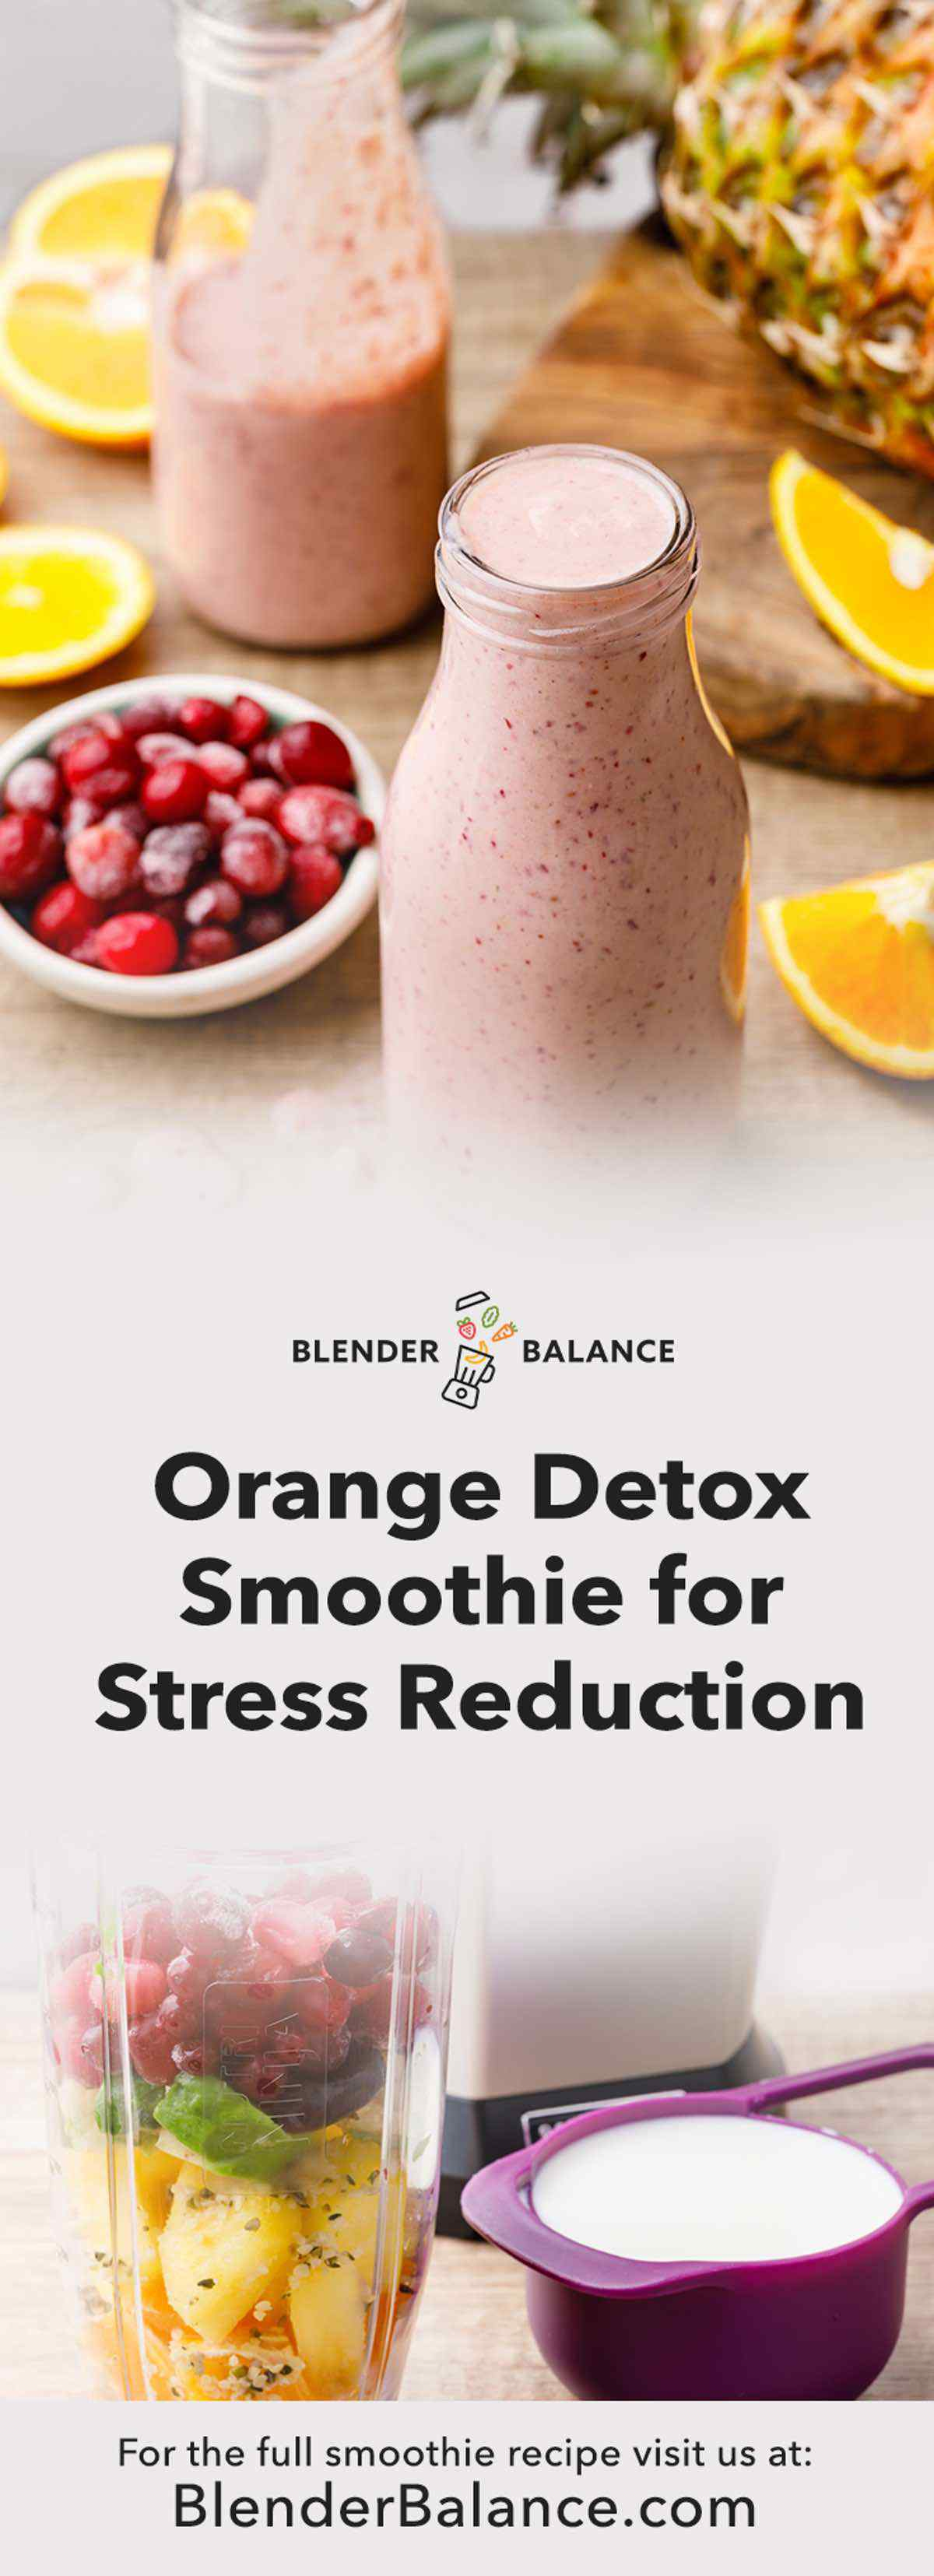 Orange Detox Smoothie